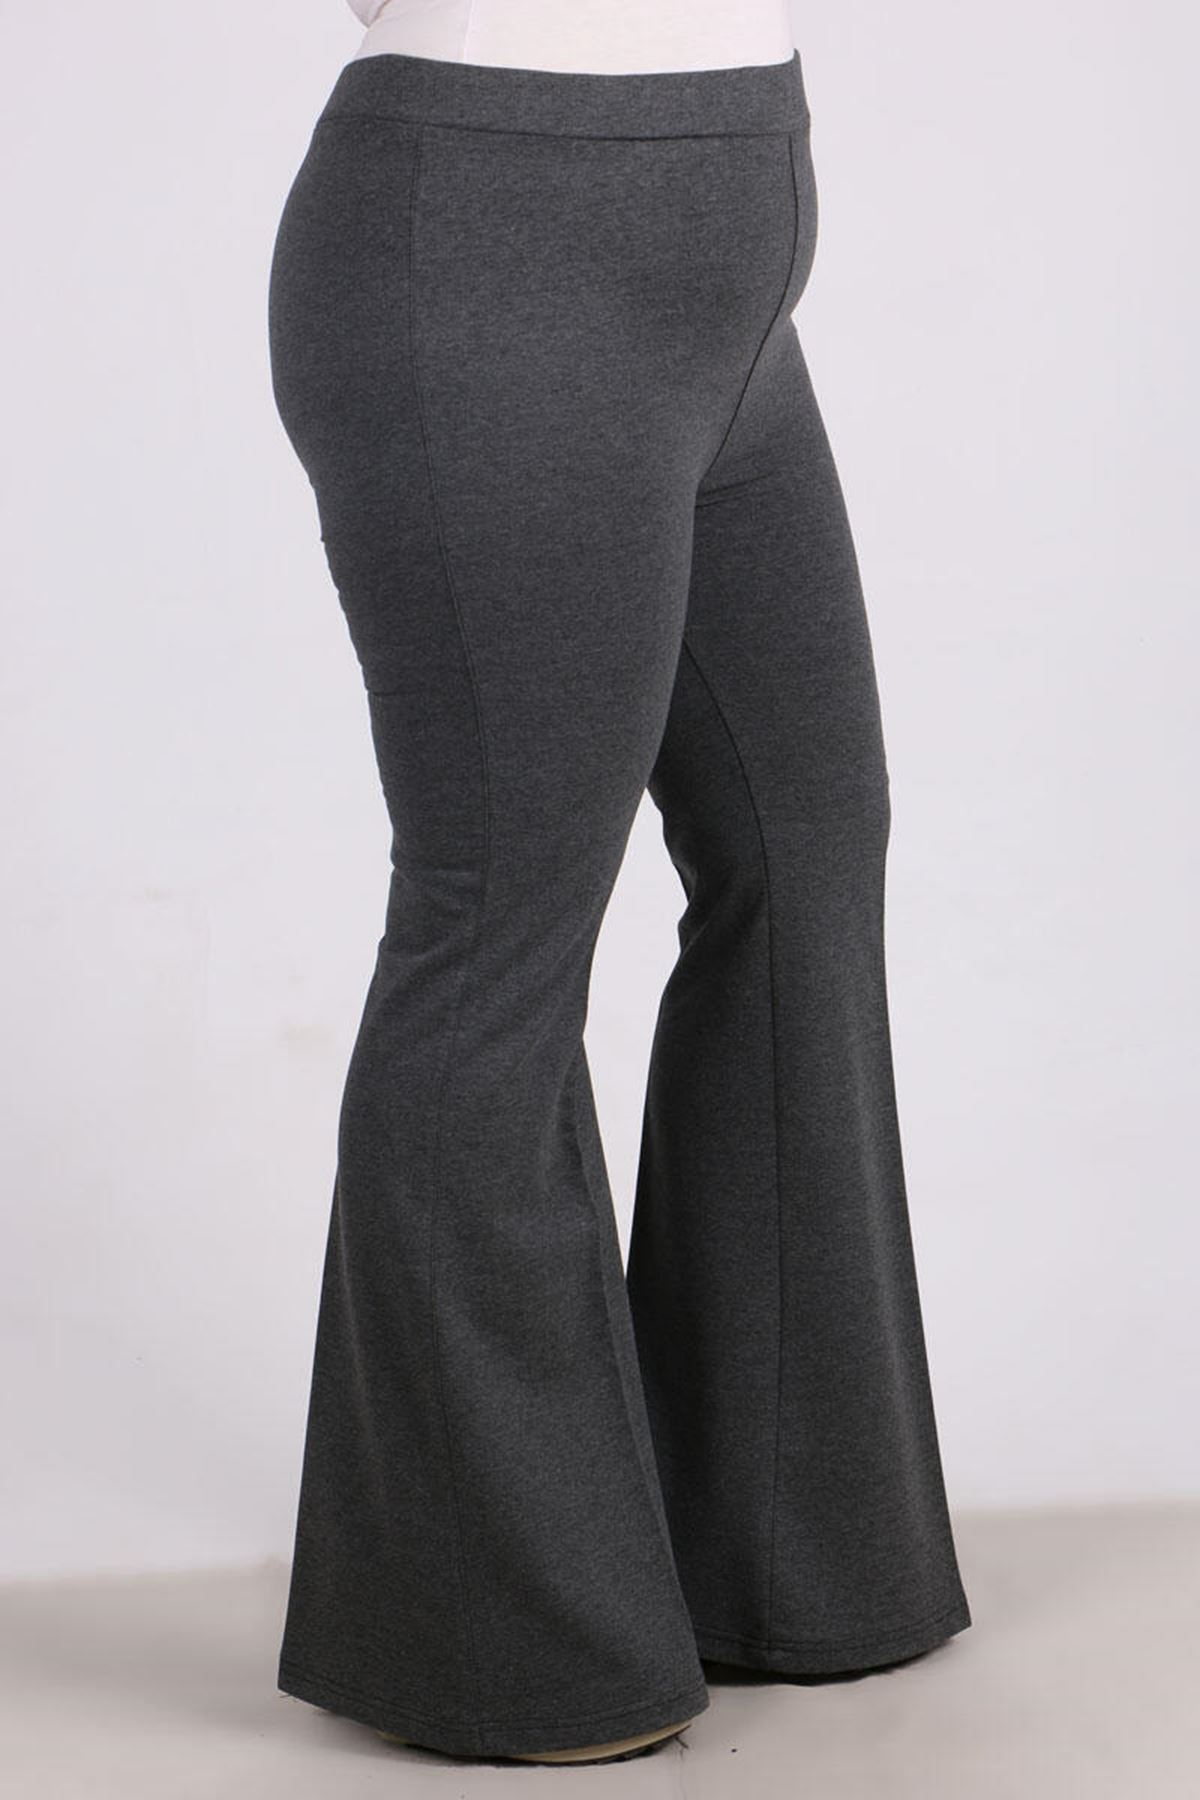 9514 Plus Size Flared Sweatpants - Anthracite